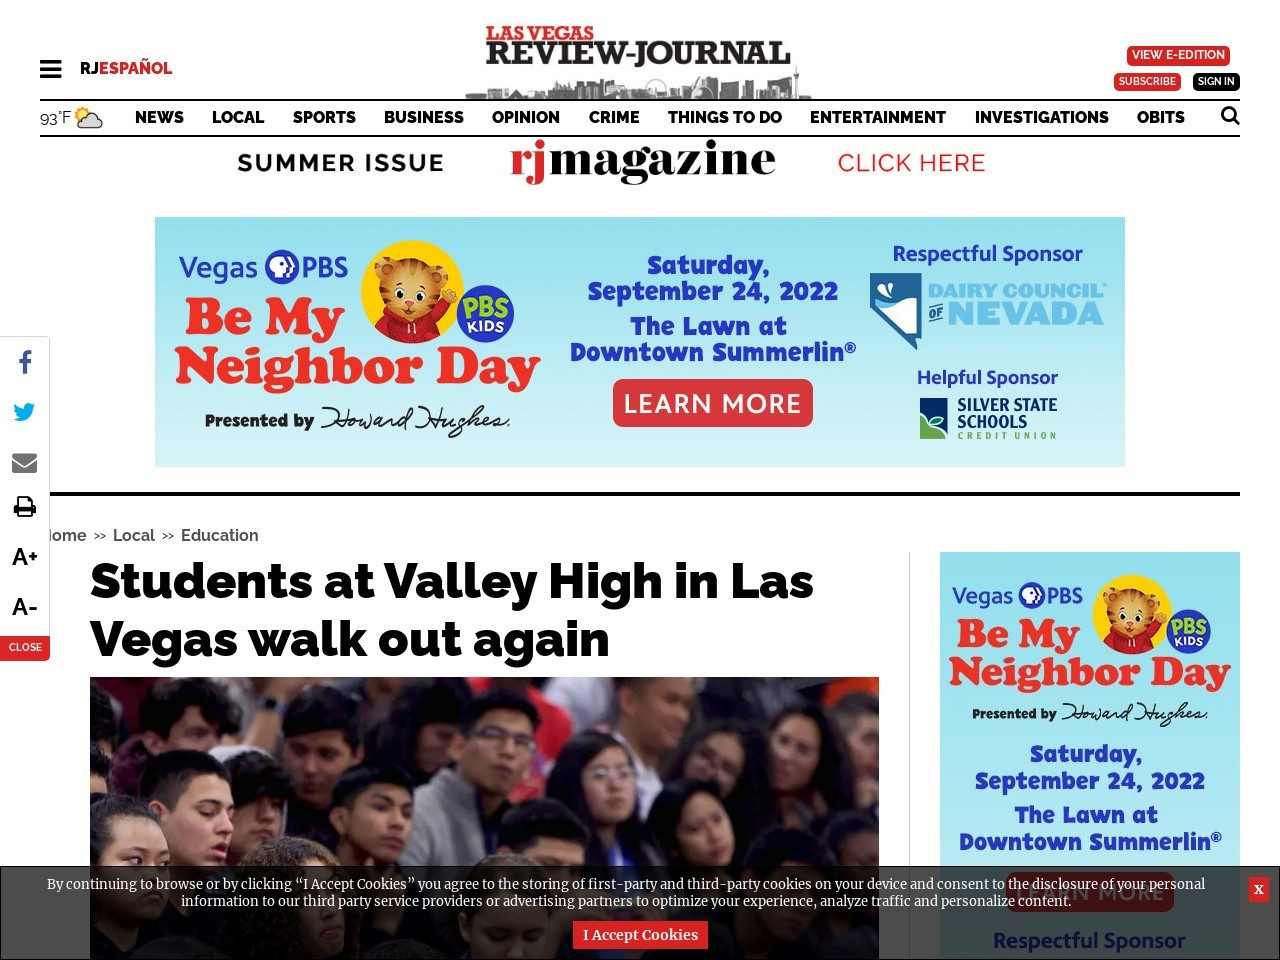 Students at Valley High in Las Vegas walk out again